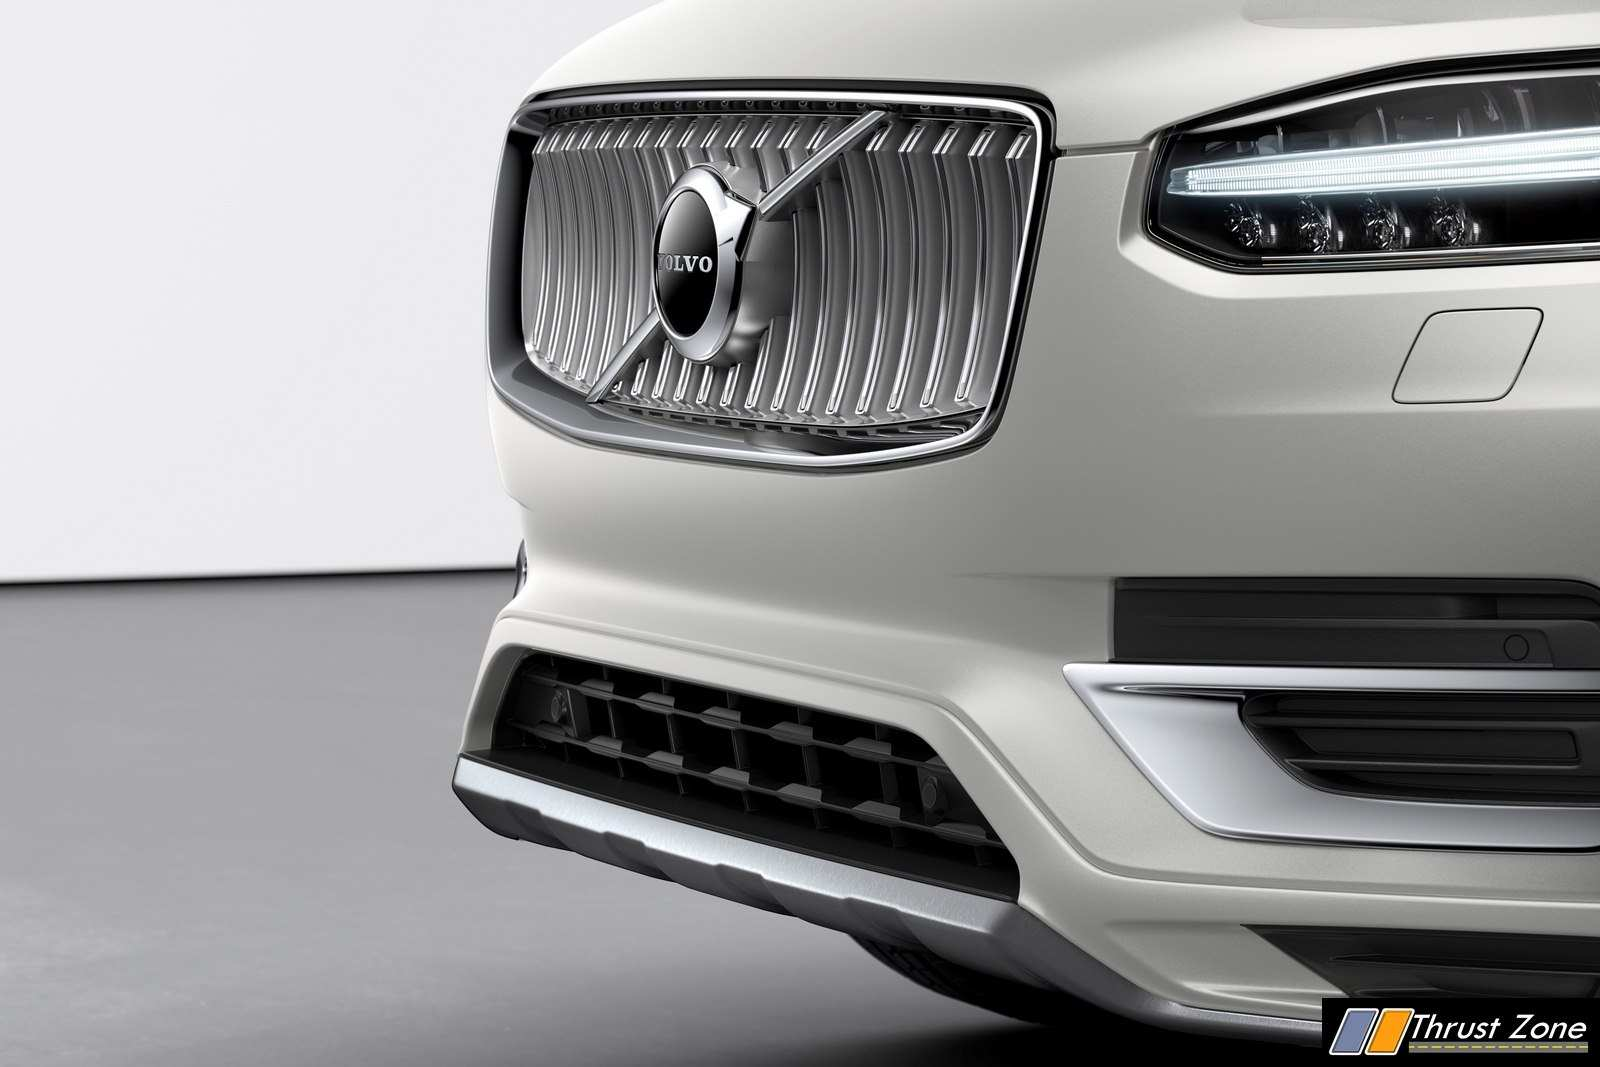 82 The Best All New Volvo Xc90 2020 Performance and New Engine